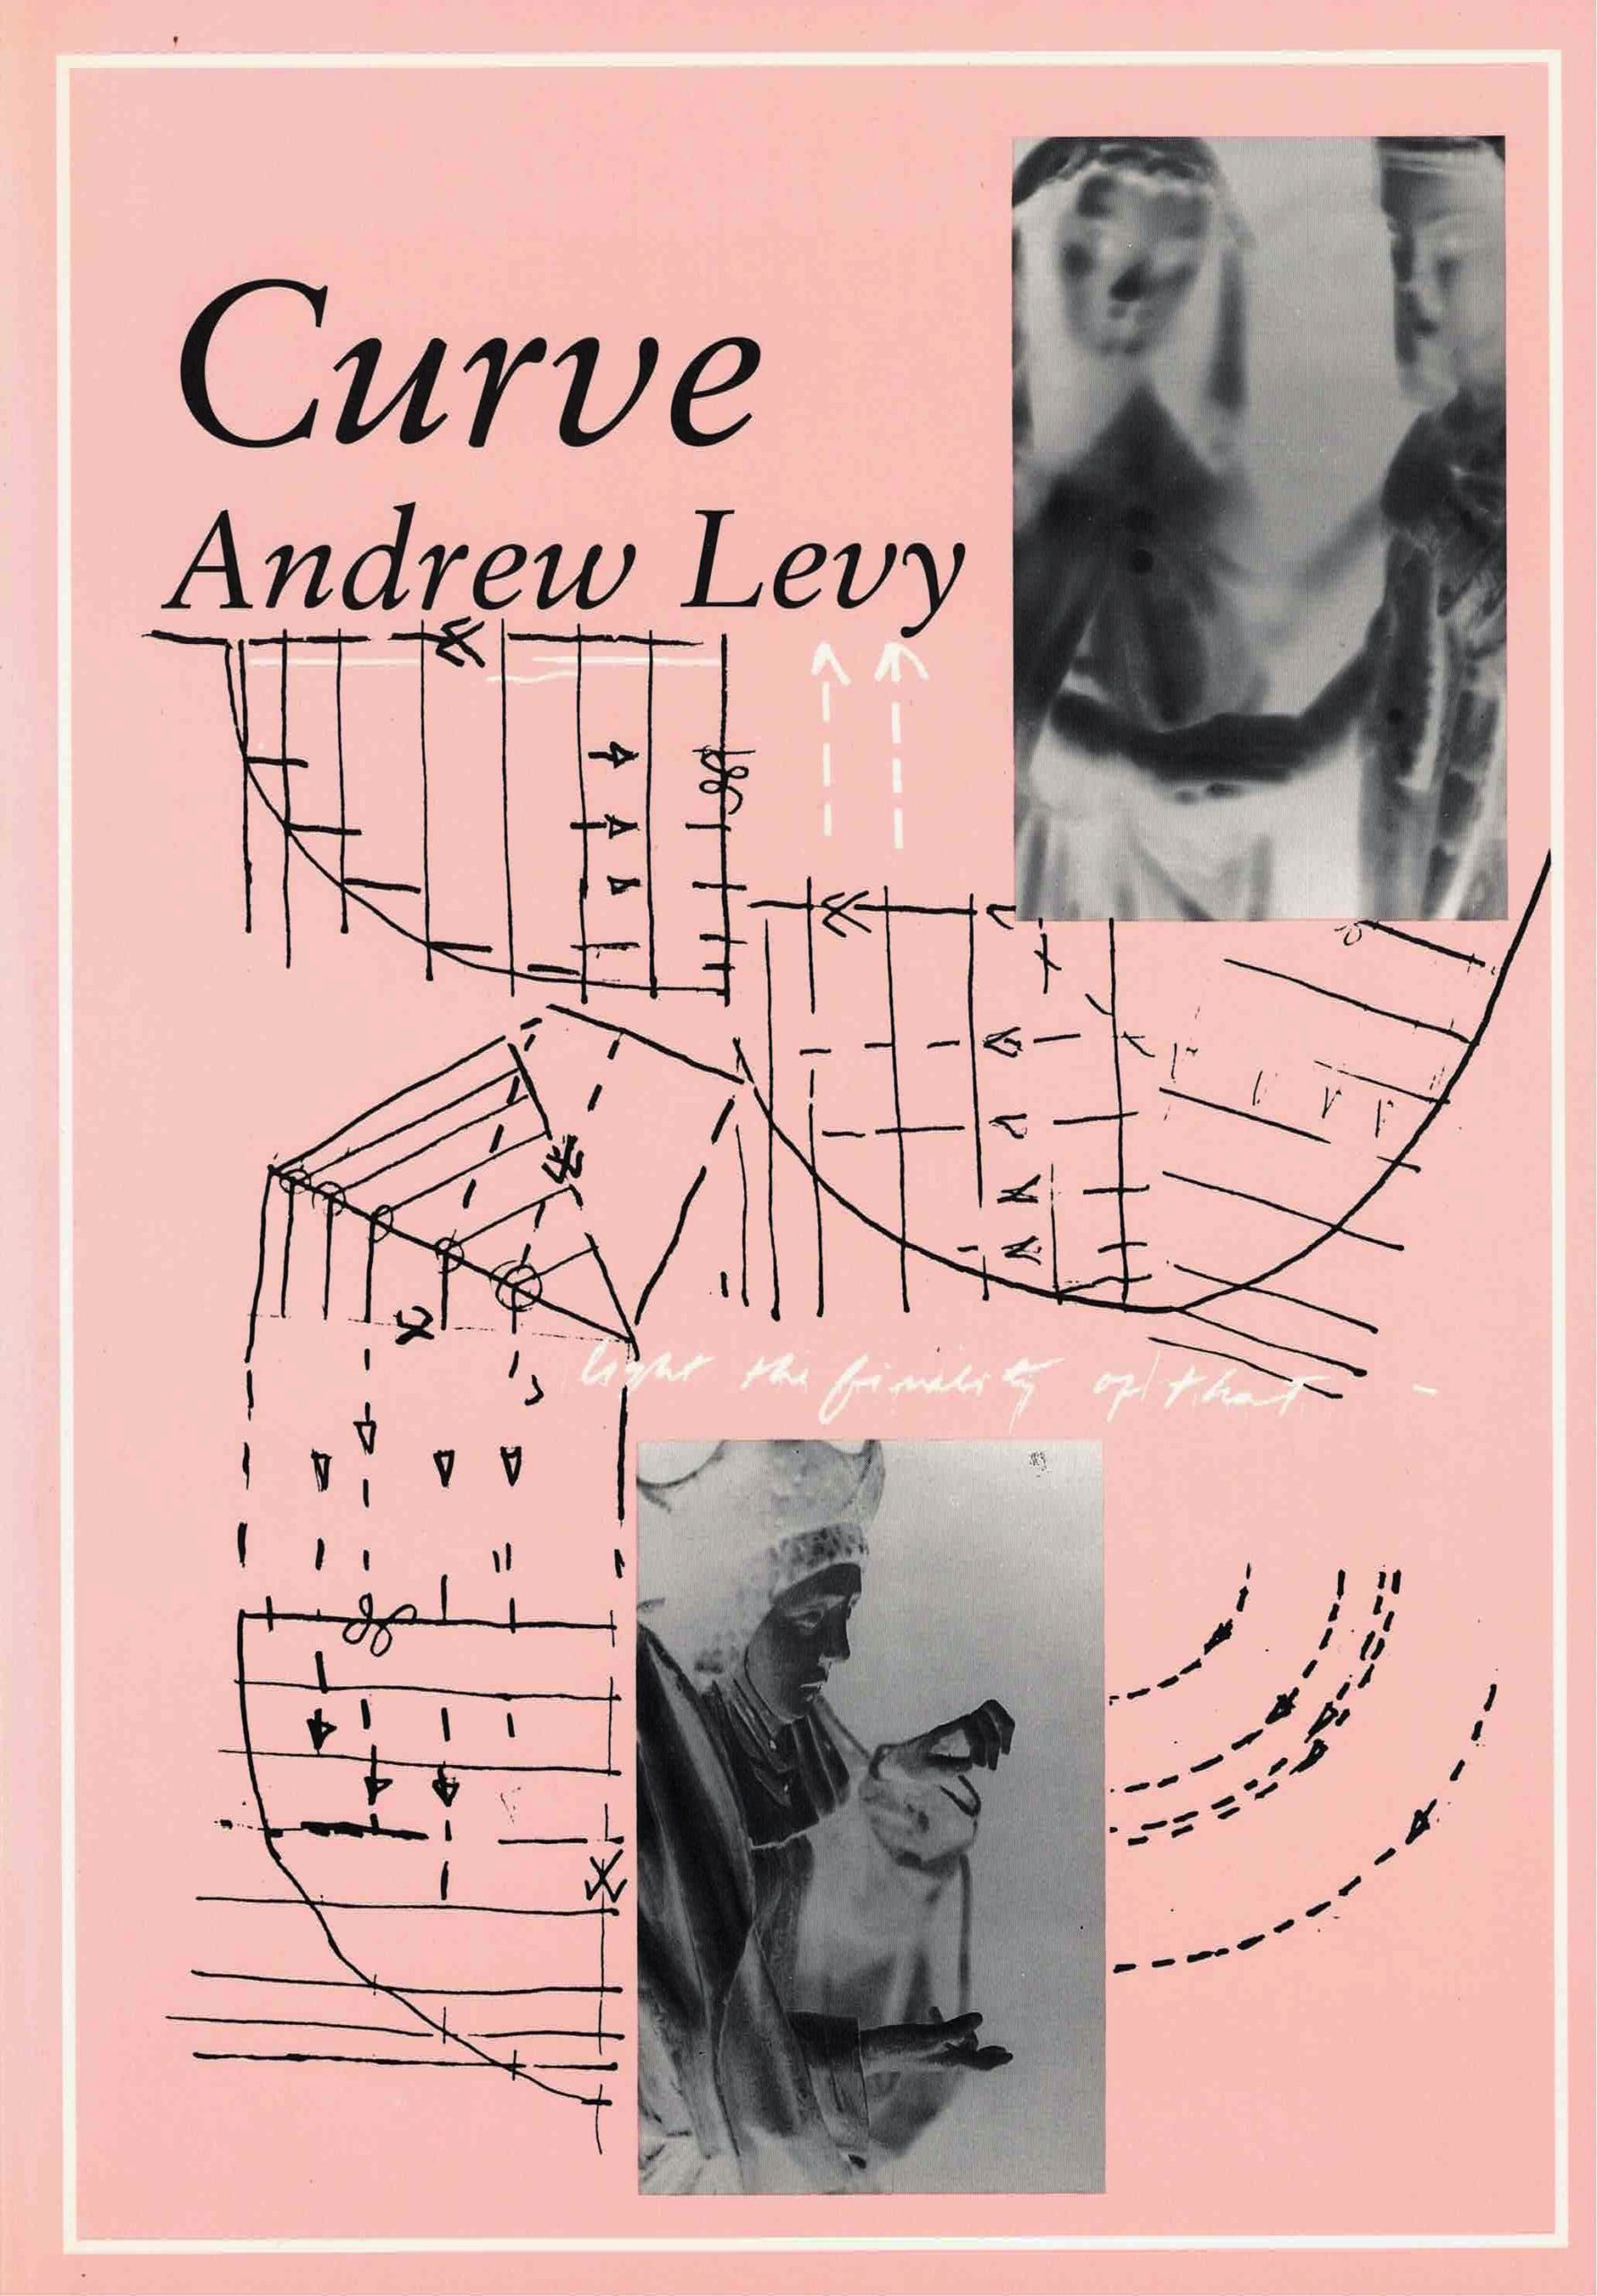 cover by Curve by Andrew Levy; two smaller vertical rectangular b&w image negatives of nuns or saints, pink background with black line drawings with curves, lines, and arrows